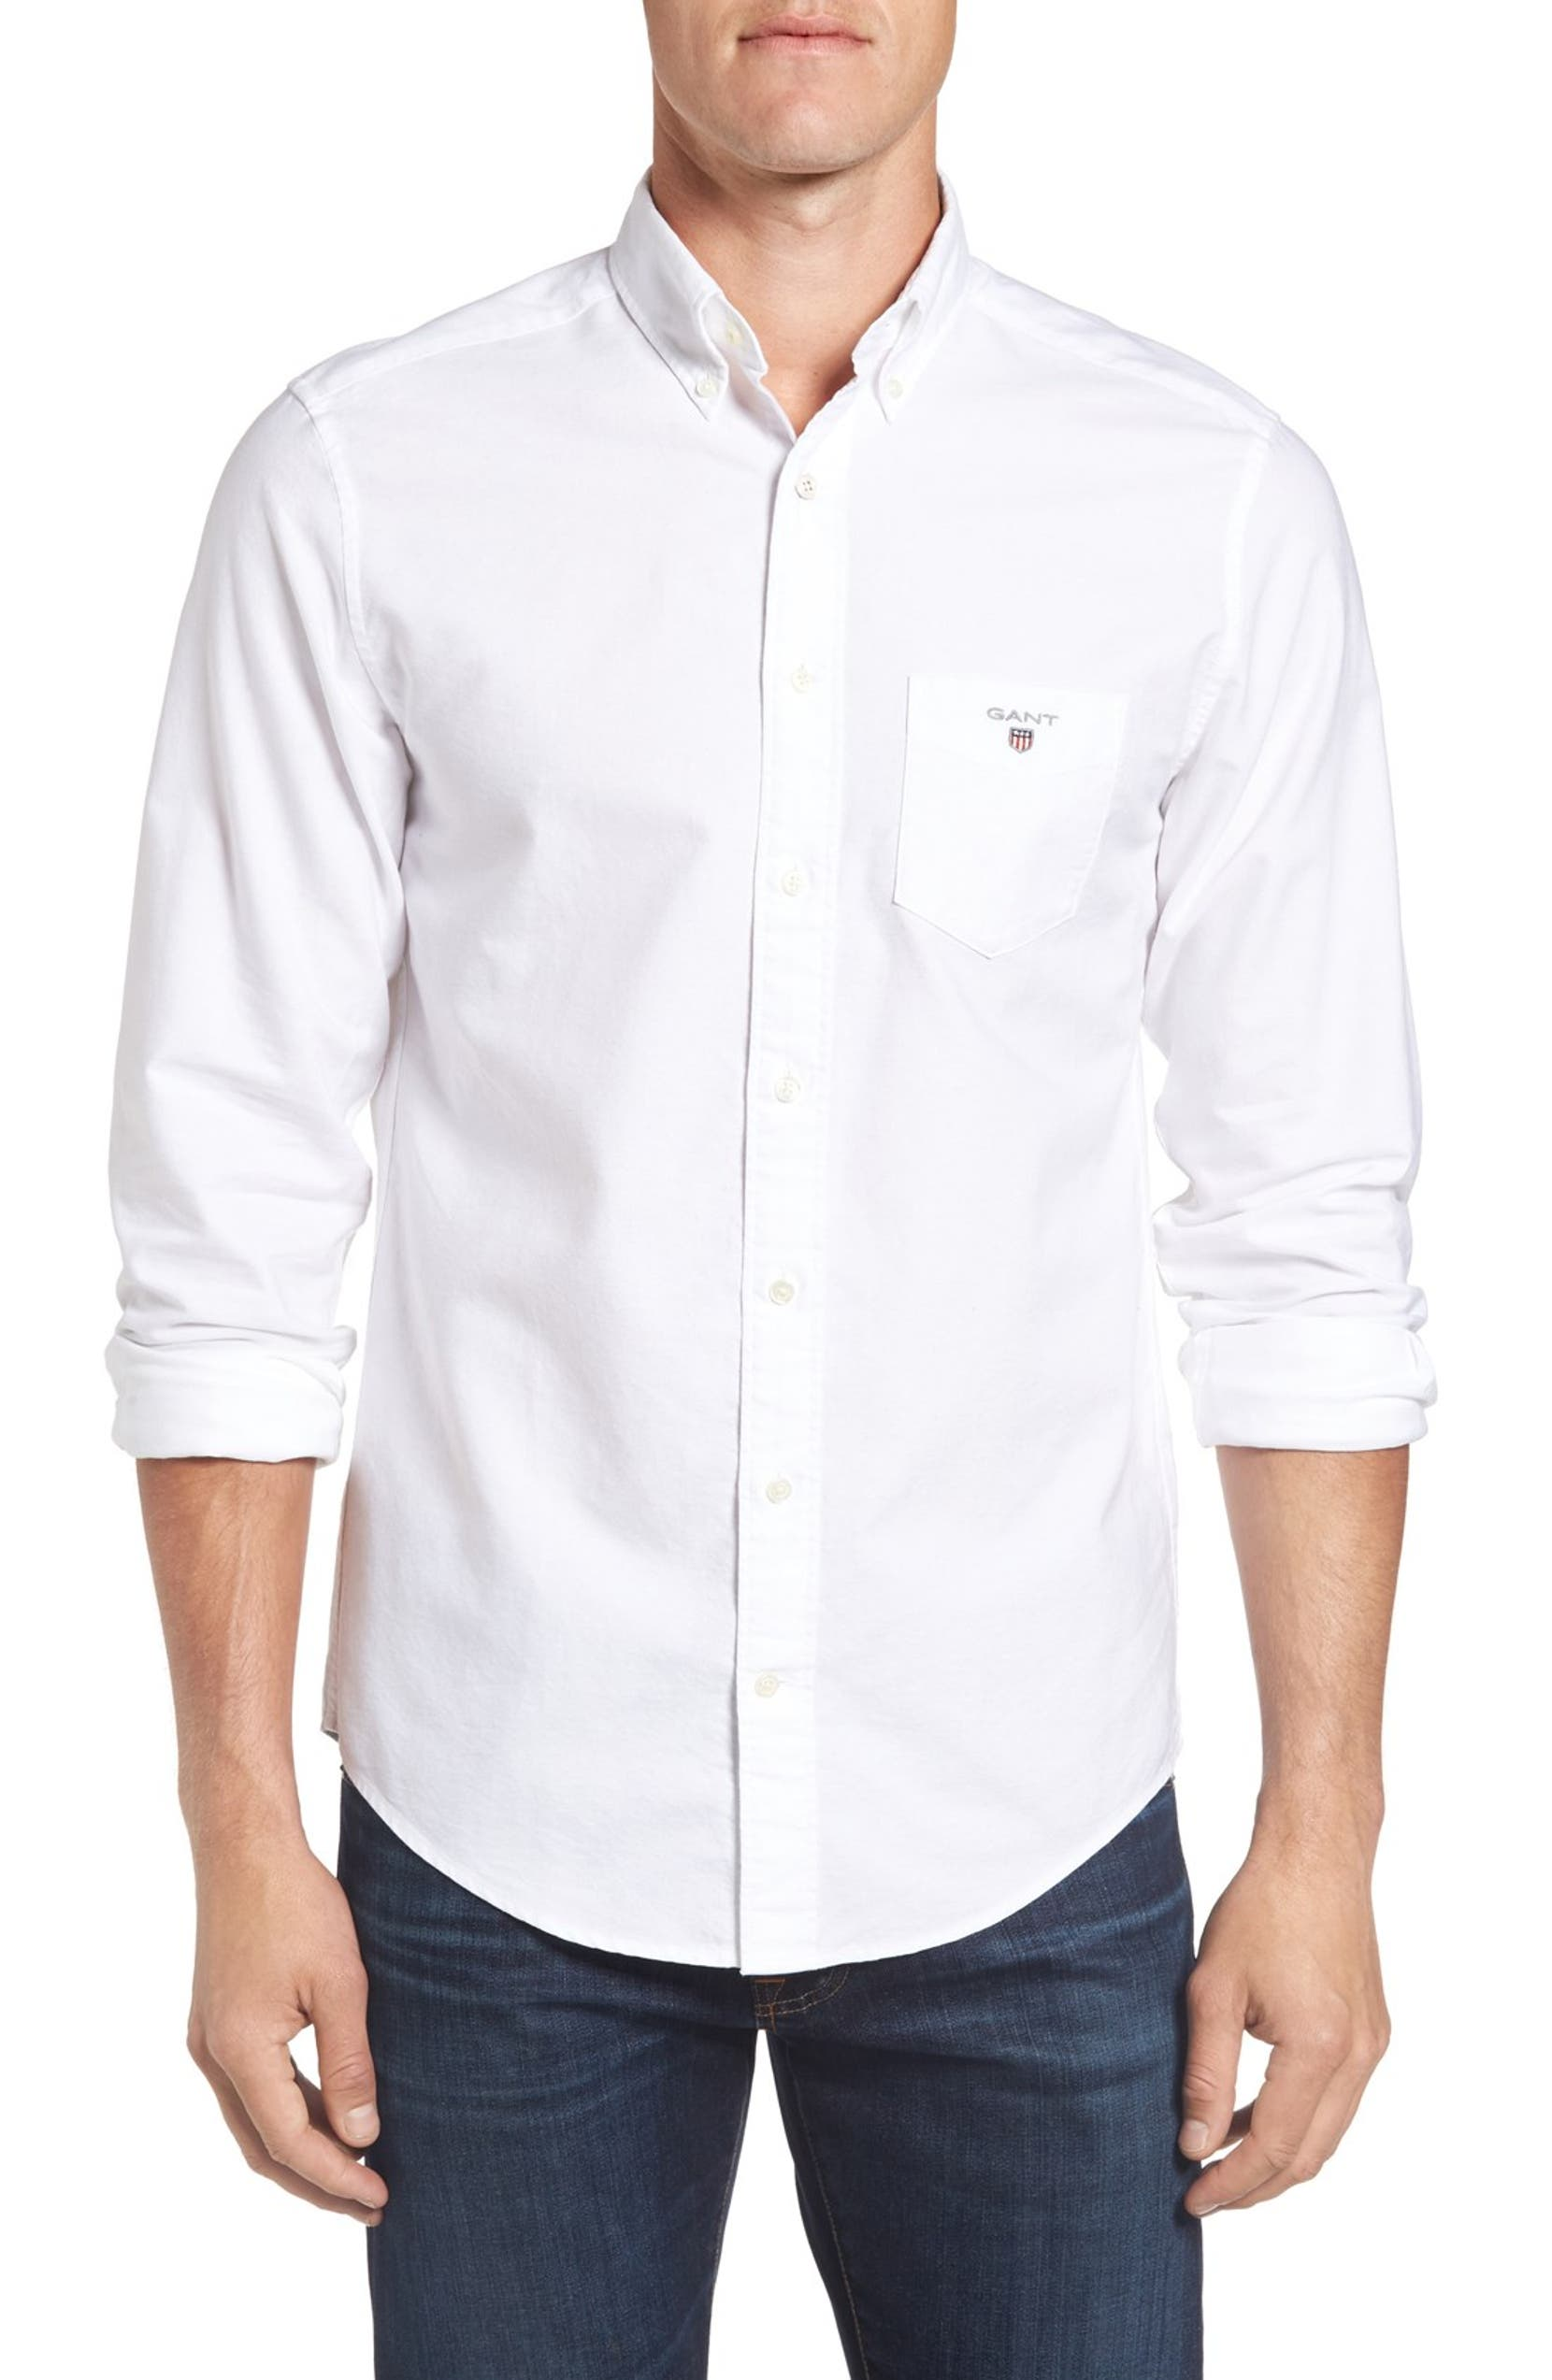 factory authentic fac2e 52f4e Oxford Fitted Sport Shirt